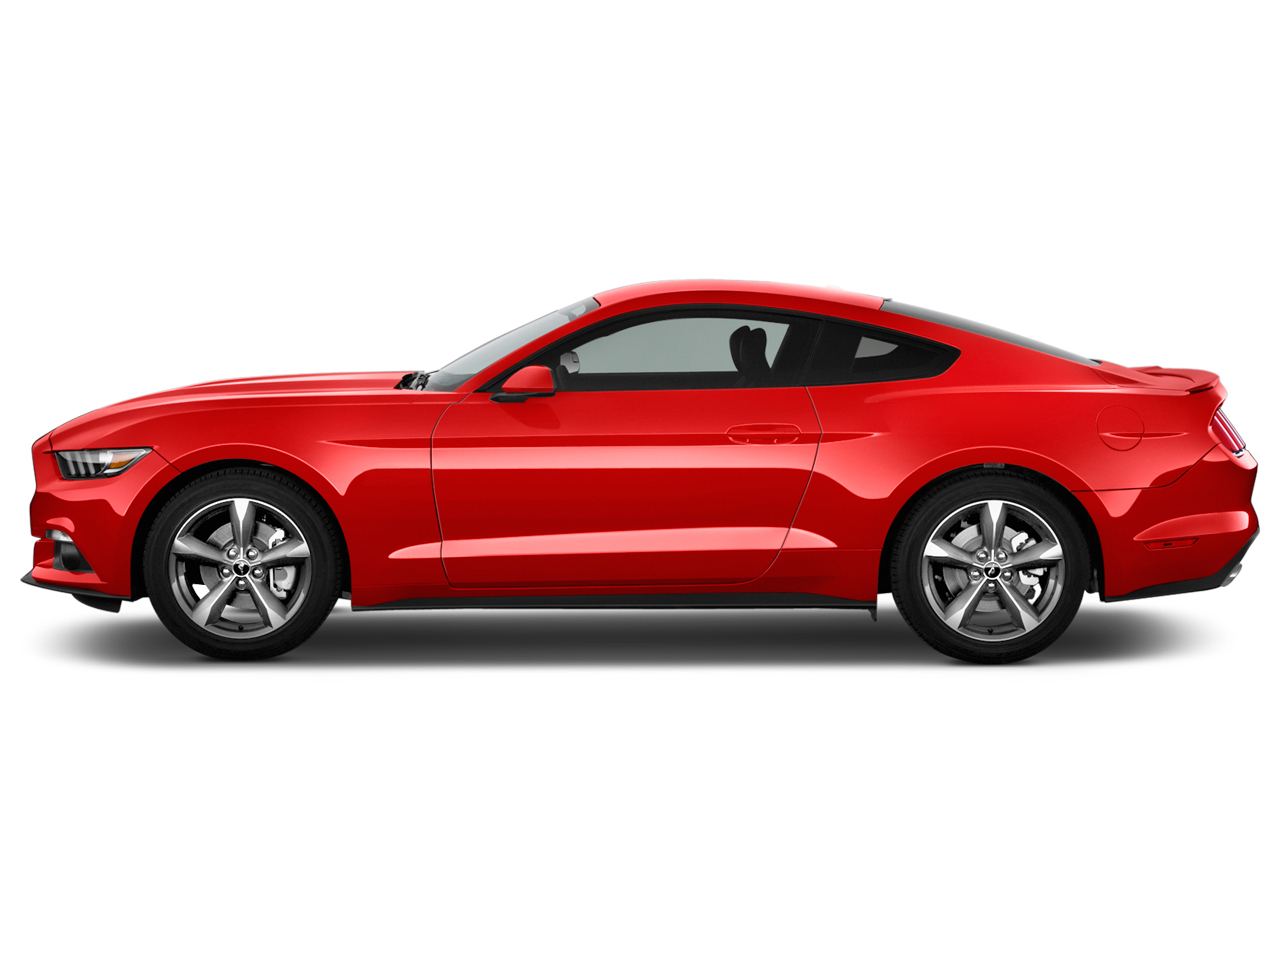 Mustang Ecoboost Premium >> Ford Mustang 2018 2.3L EcoBoost Fastback Premium in UAE: New Car Prices, Specs, Reviews & Photos ...